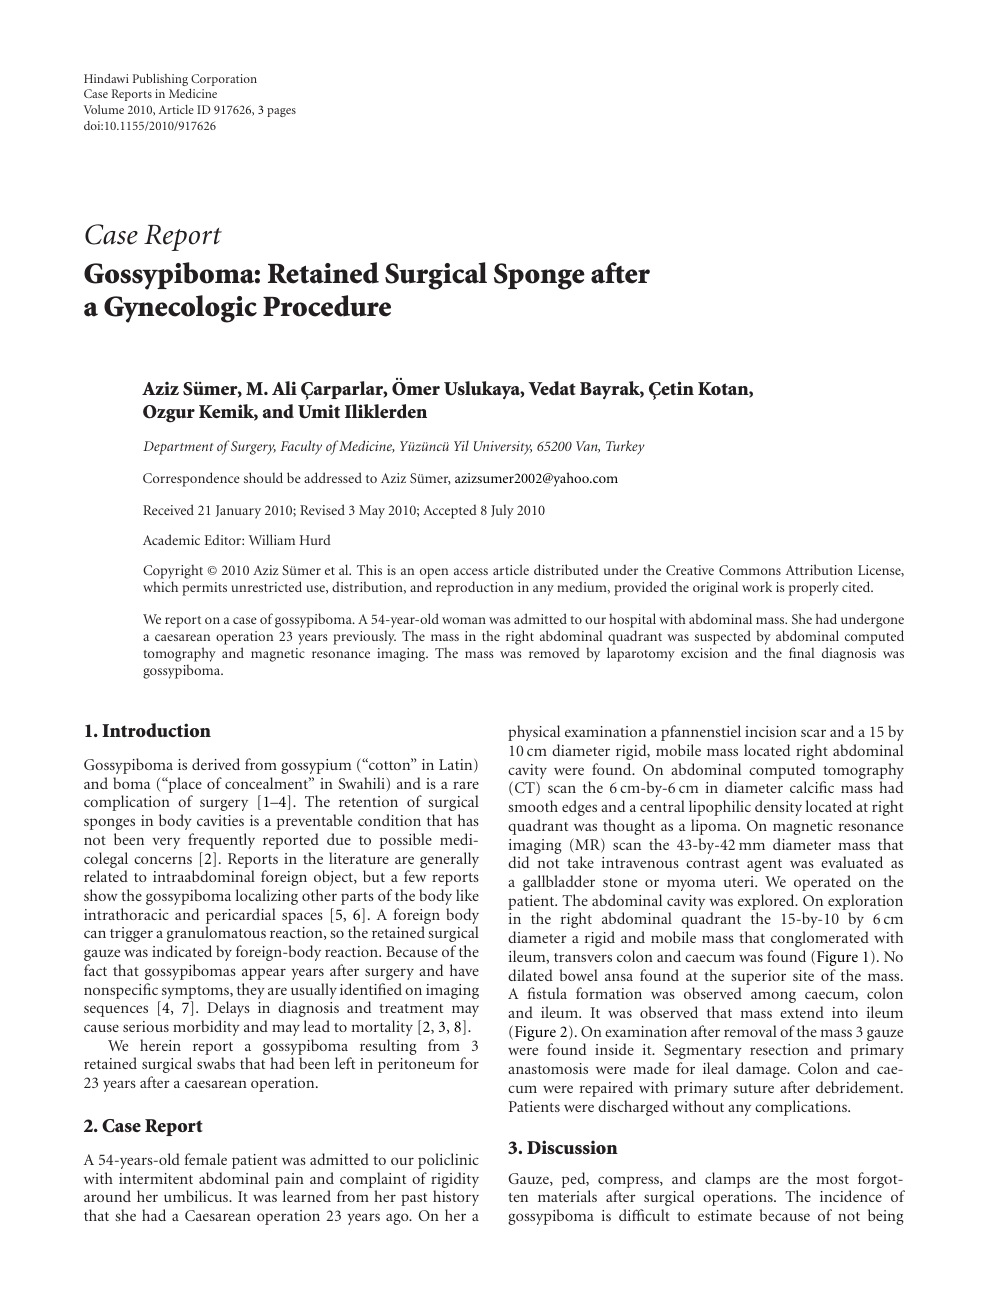 Gossypiboma: Retained Surgical Sponge after a Gynecologic